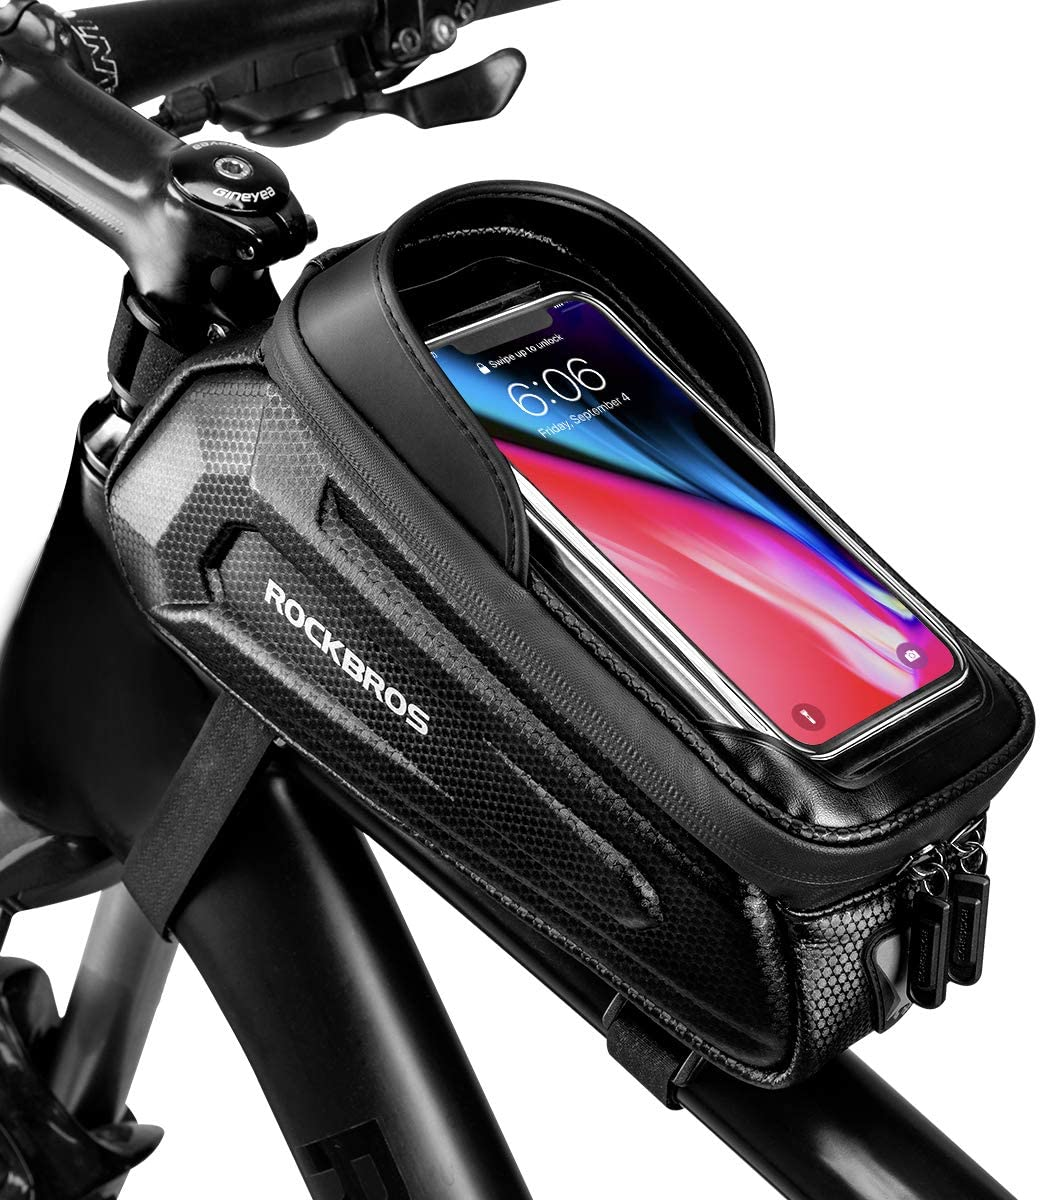 TLOG Bike Handlebar Bag Cold /& Warm Insulation Bike Frame Bag with Reflective Strap /& Touchable Screen Bike Front Bag//Bike Pouch for Cycling Outdoor Activity Bike Basket with Two Mesh Pocket